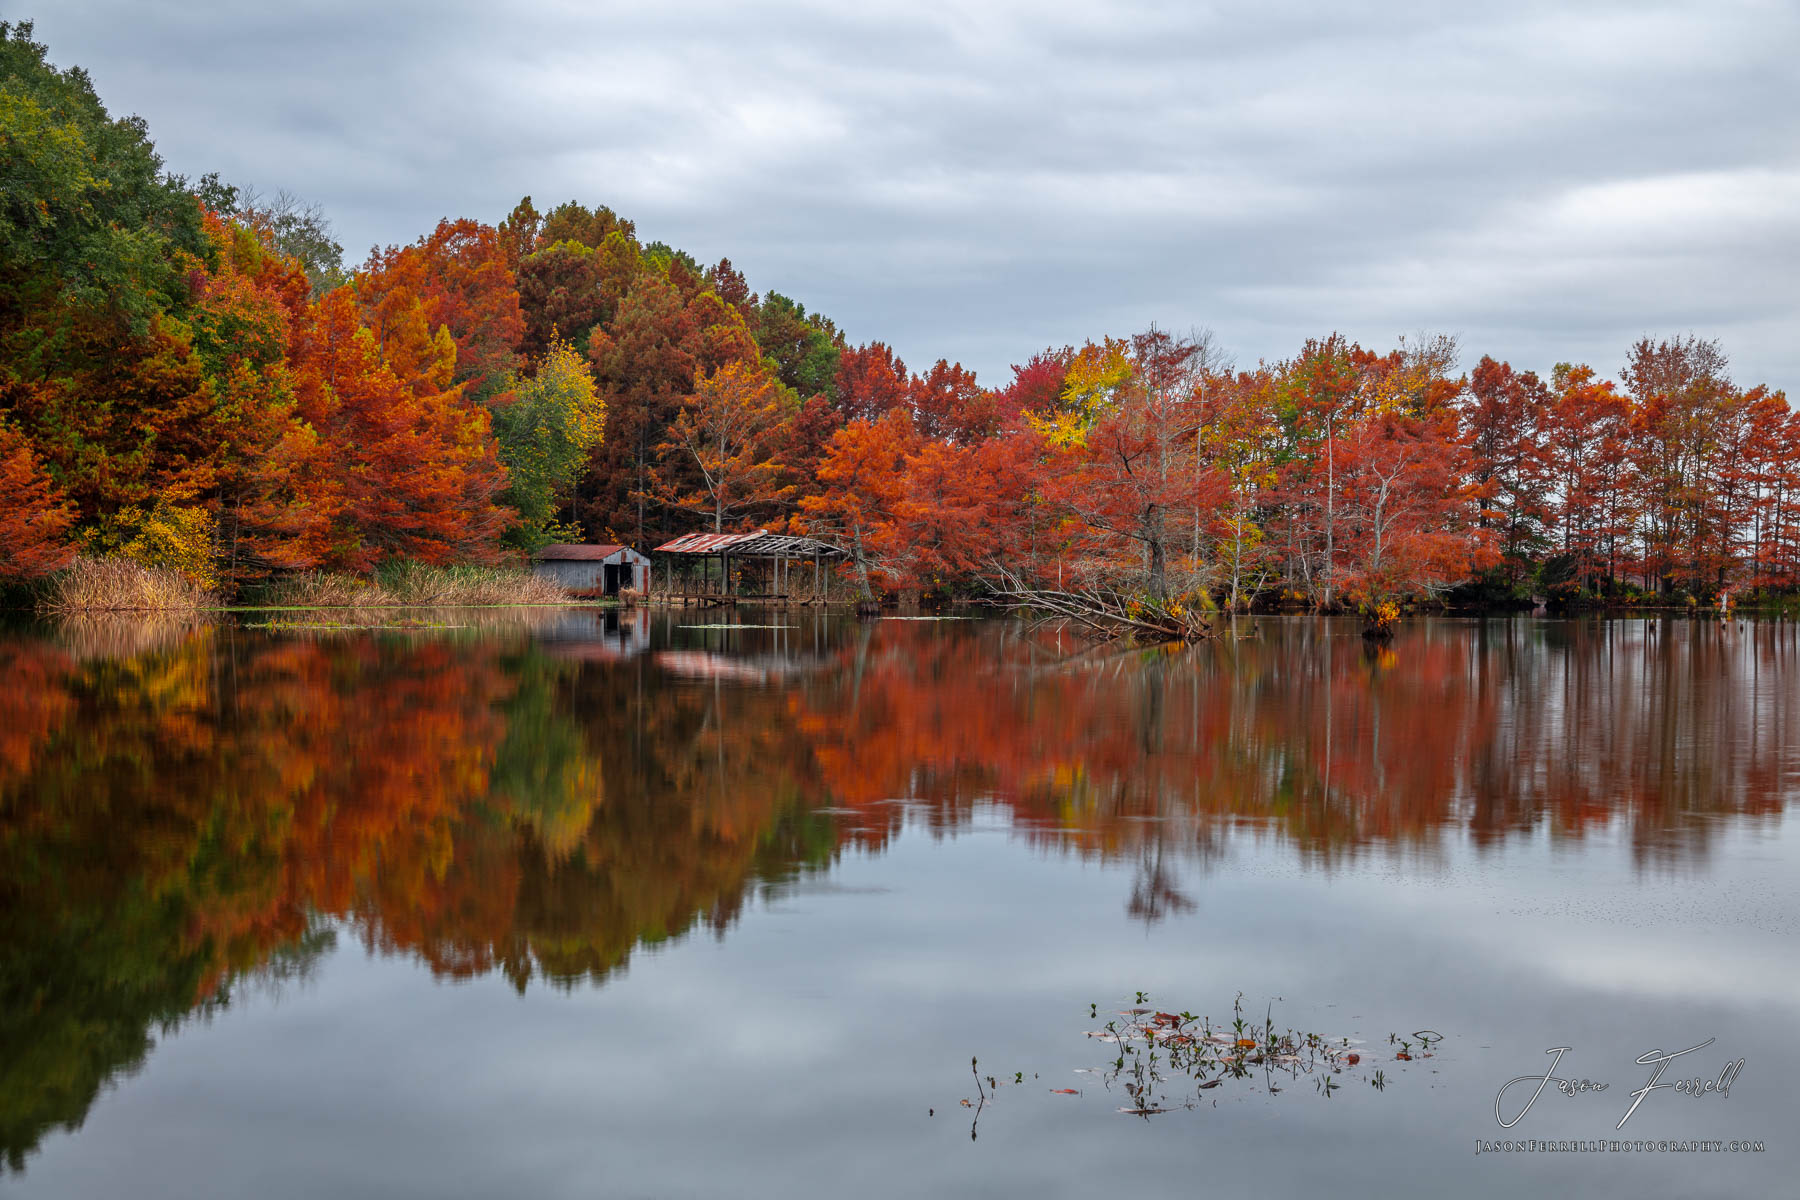 rusk county, texas, abandoned beauty, autumn, colors, old boat dock, reflected, bald cypress trees, lake, photo